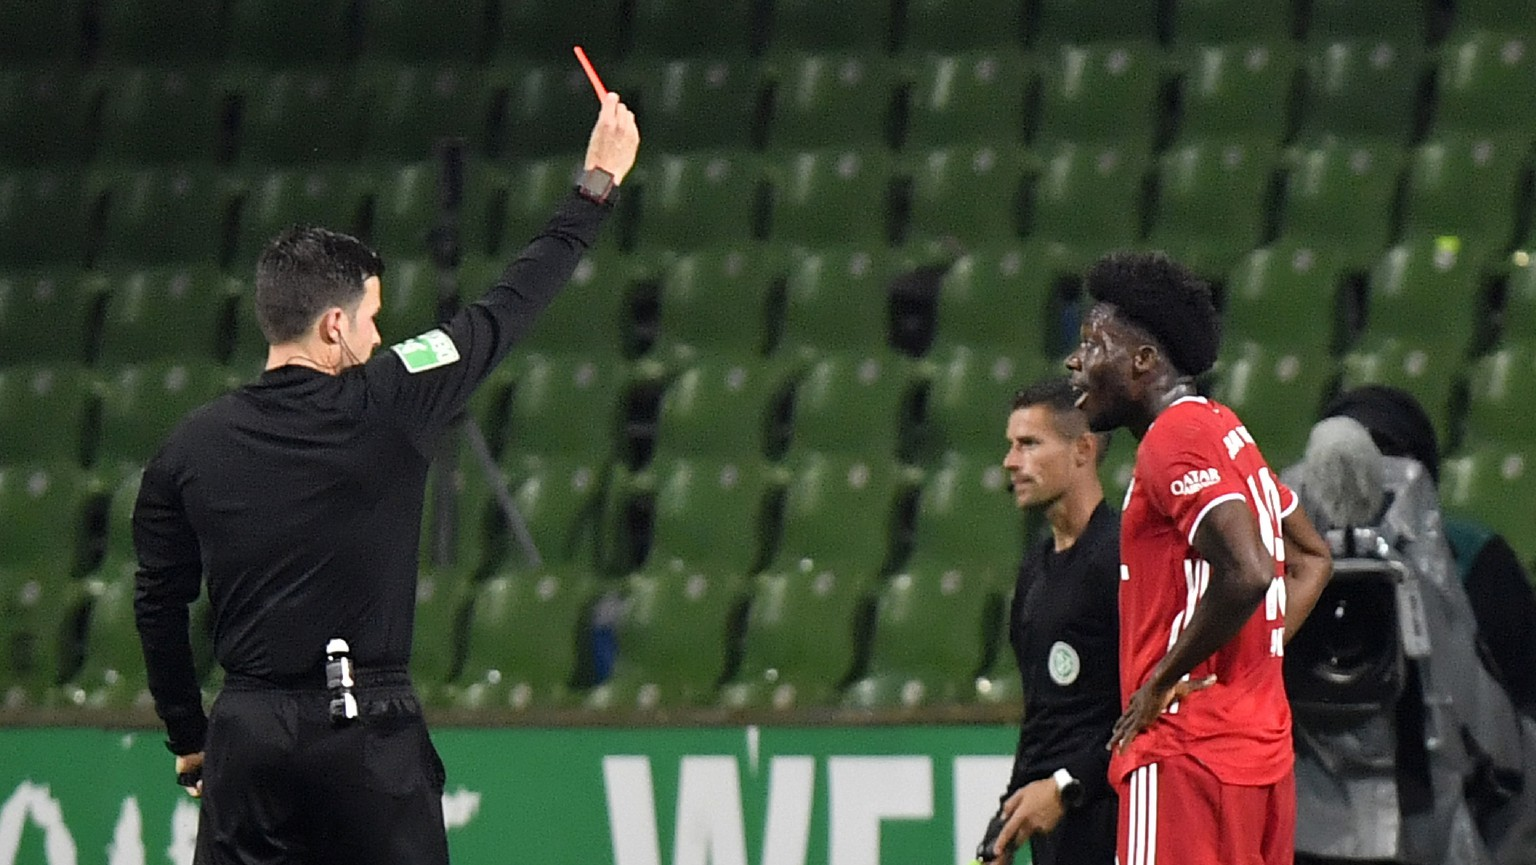 Referee Harm Osmers shows the red card to Bayern's Alphonso Davies during the German Bundesliga soccer match between Werder Bremen and Bayern Munich in Bremen, Germany, Tuesday, June 16, 2020. Because of the coronavirus outbreak all soccer matches of the German Bundesliga take place without spectators. (AP Photo/Martin Meissner, Pool)